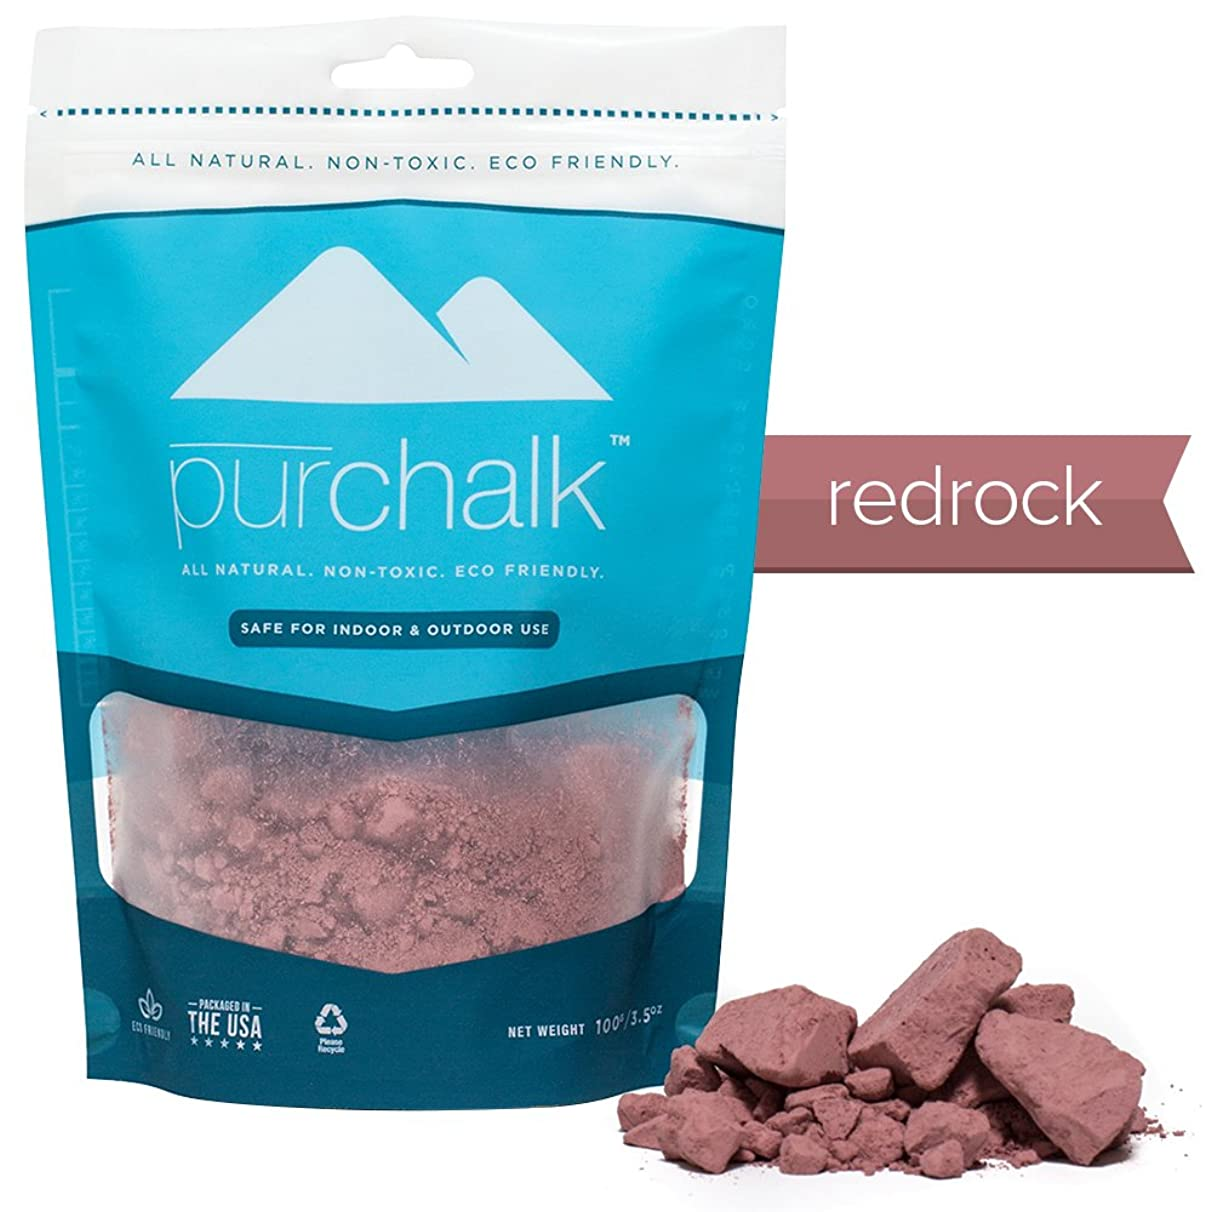 Pur Chalk   #1 Best Climbing Chalk   100% Natural Chalk for CrossFit, Powerlifting & Gymnastics   Eco- Friendly   Safe for Indoor & Outdoor Use   Gym , Workout & Weight Lifting Loose Chalk   100% Pure Magnesium Carbonate   Non-staining   Non-toxic   100% Money Back Guarantee